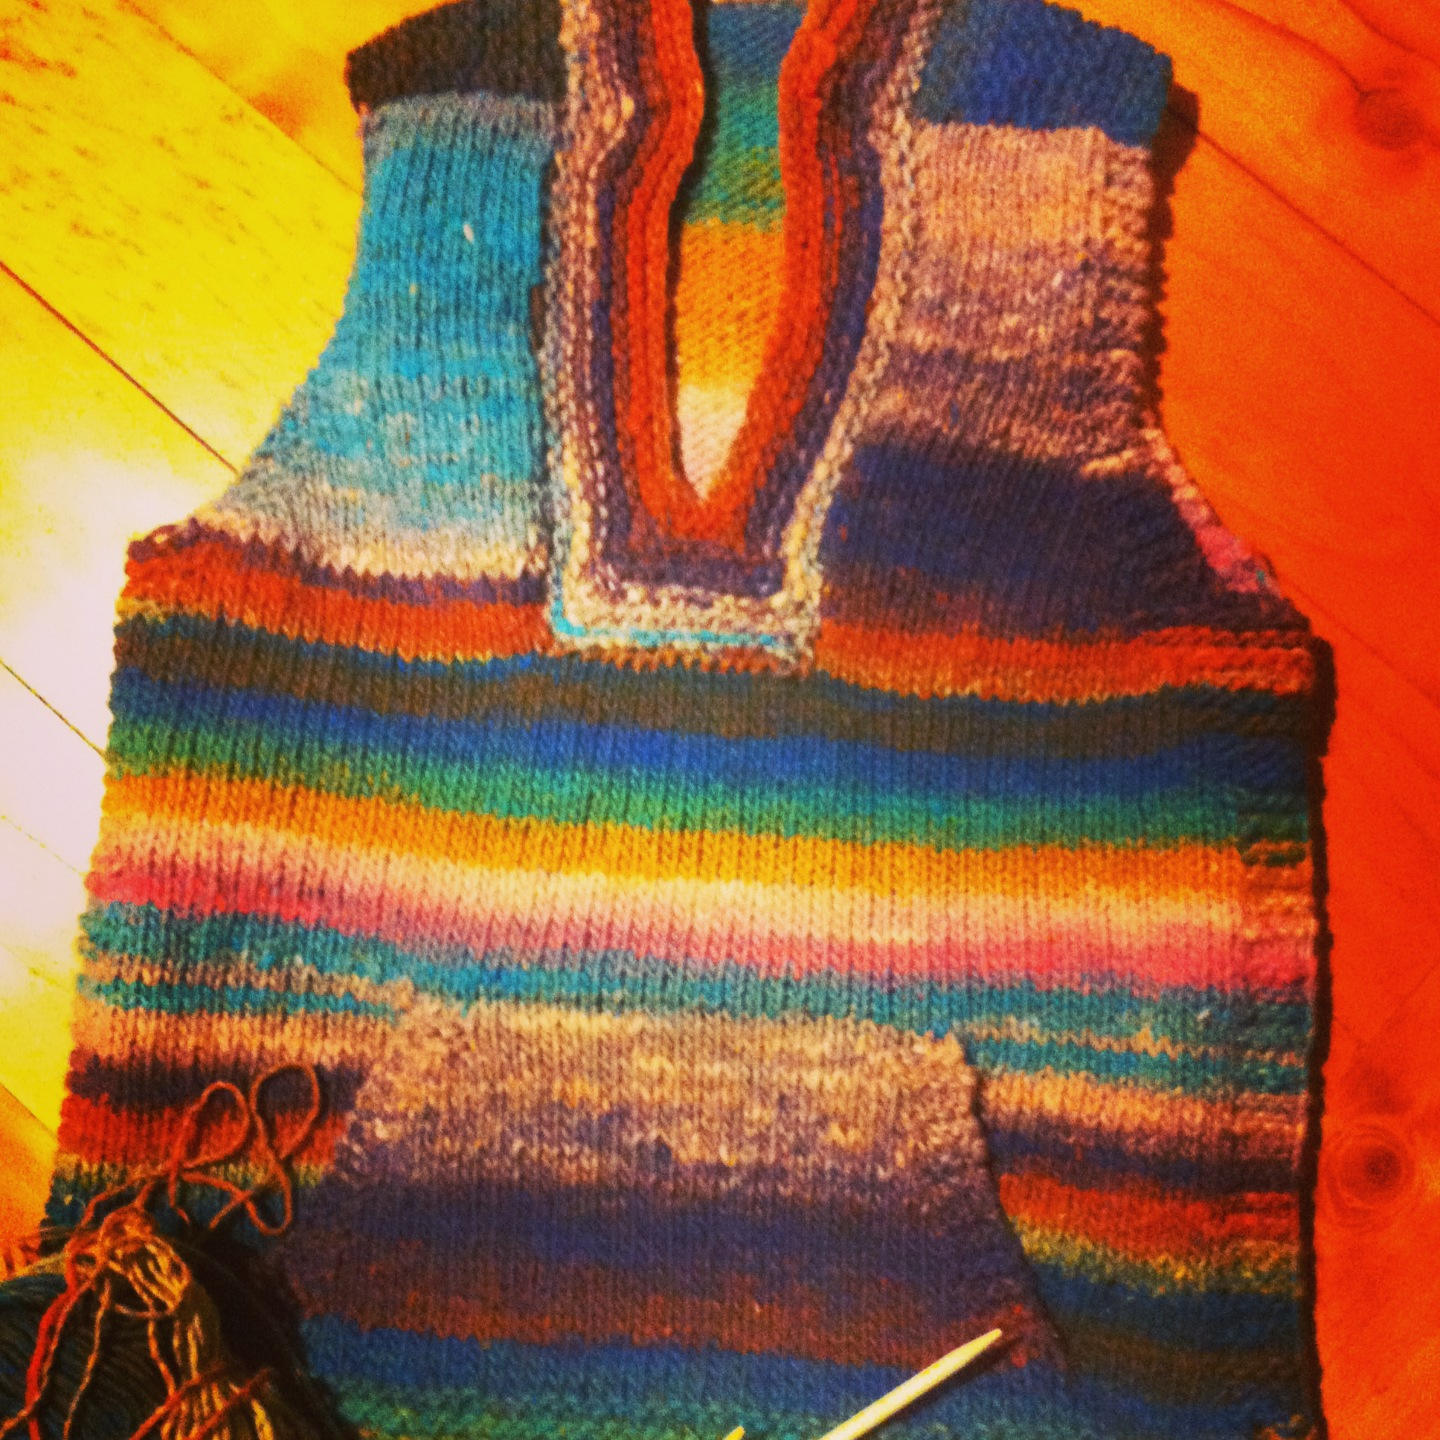 Happy Whimsical Hearts: A Knitted Birthday Vest